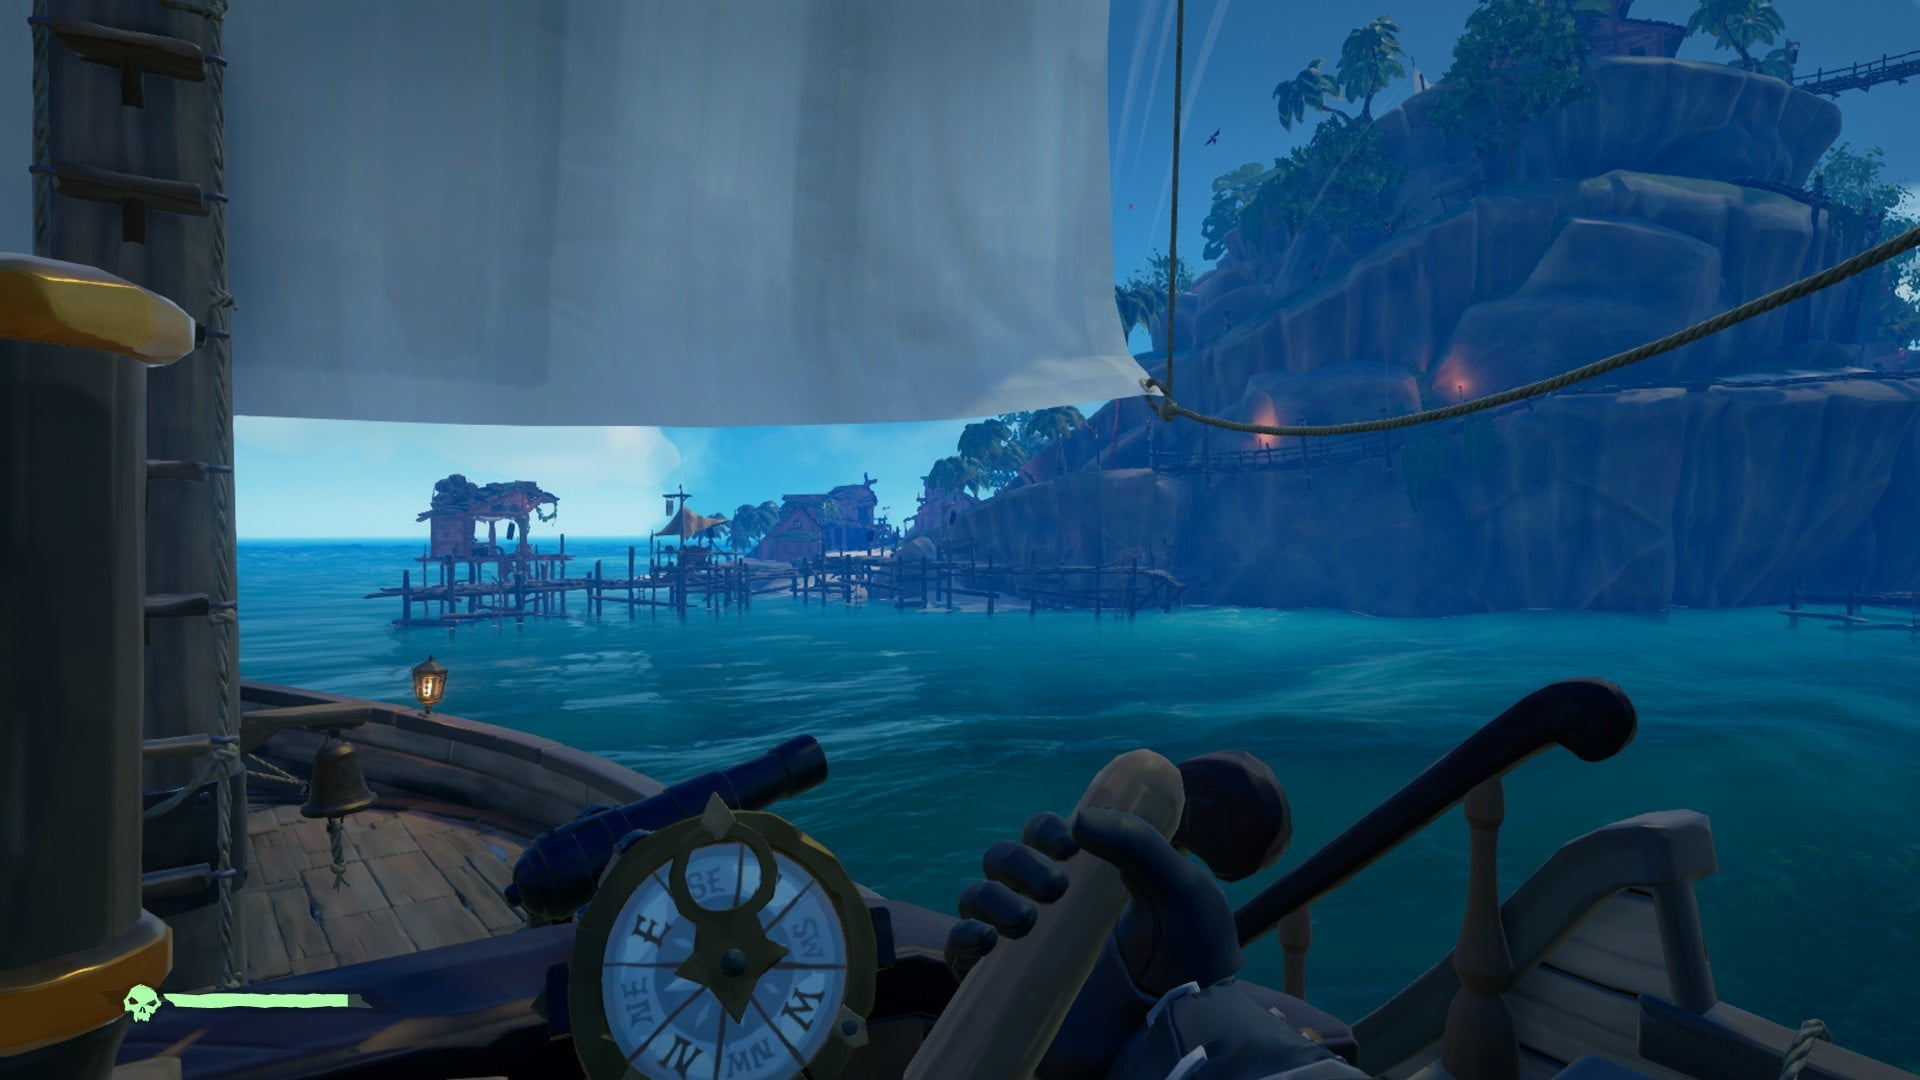 How to Play 'Sea of Thieves' Solo: 10 Tips for Single-Player Sailing